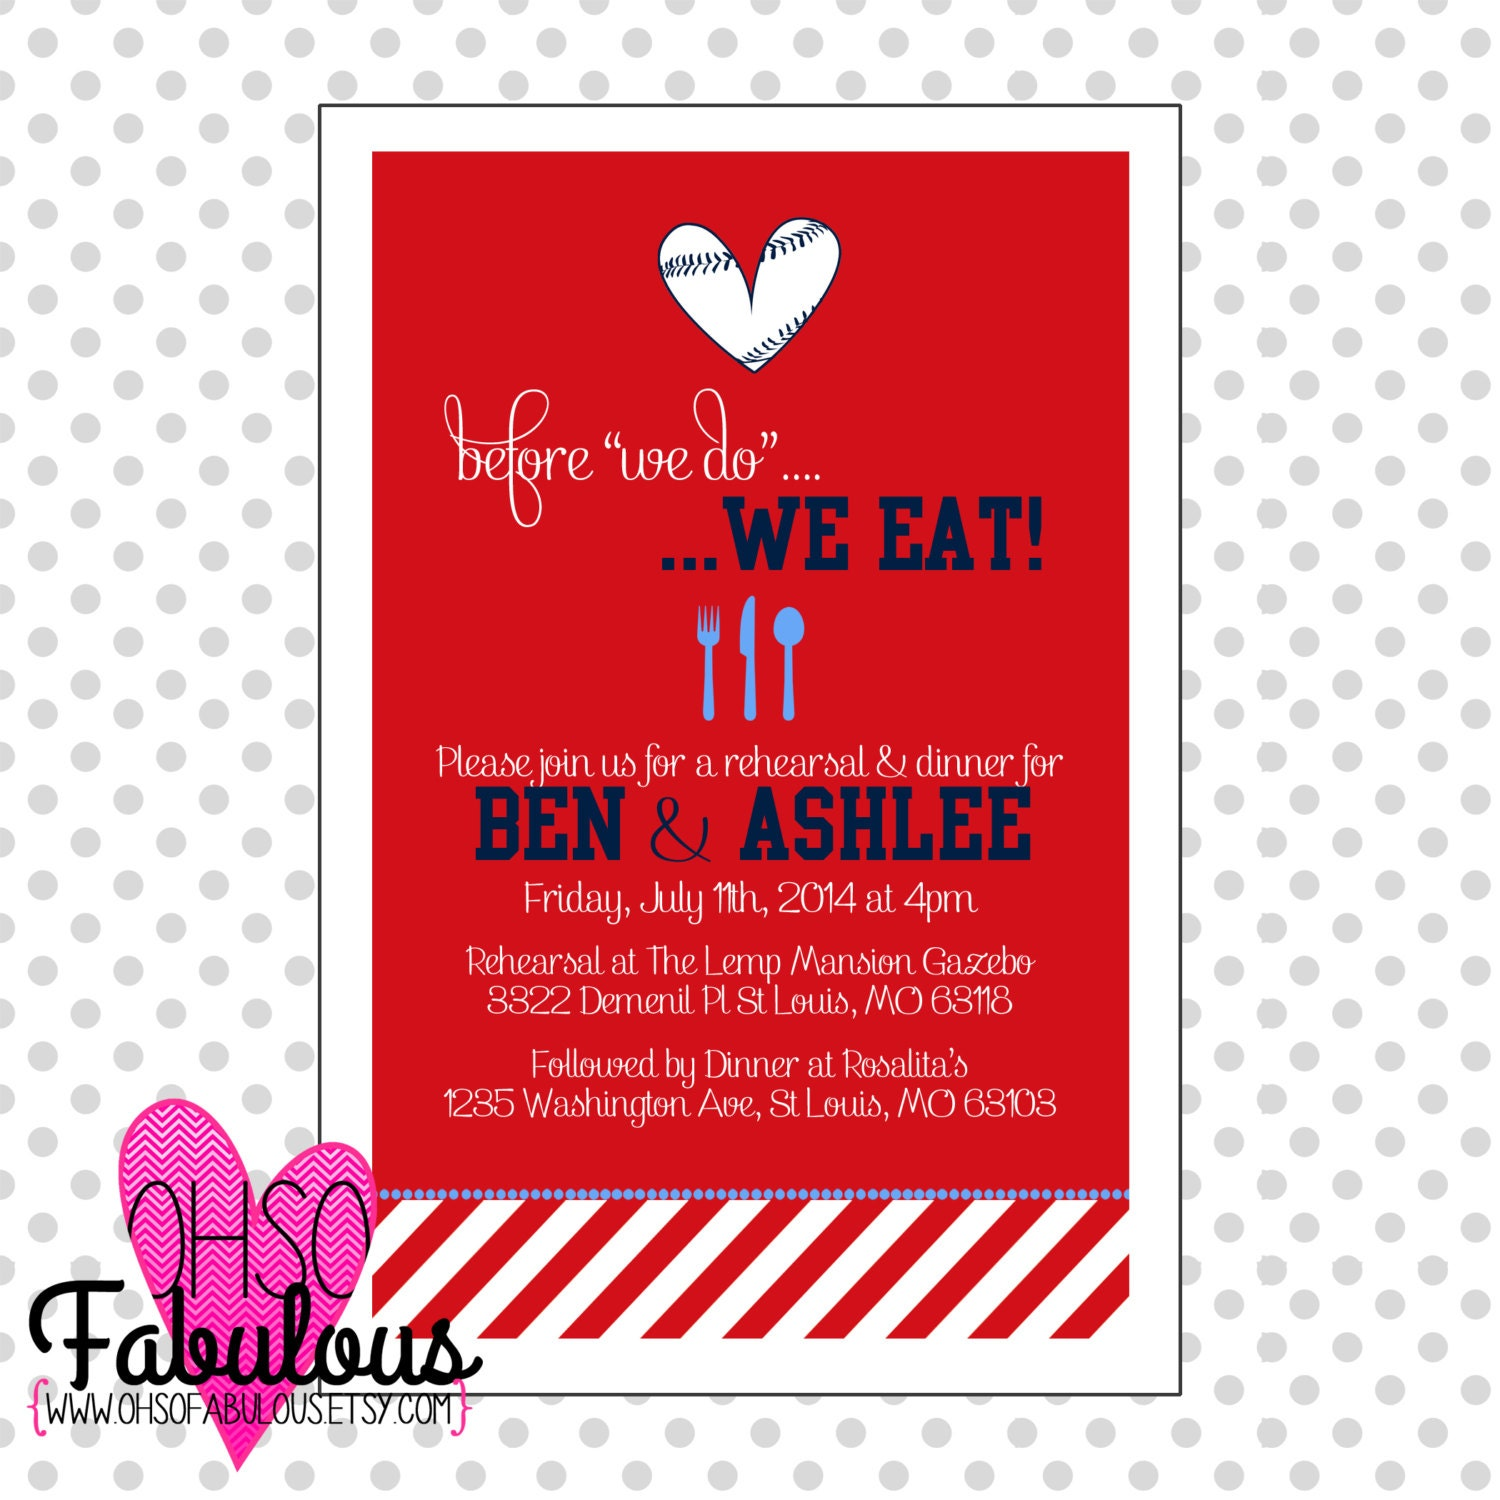 rehearsal dinner invitation custom wording colors 2216585 weddbook ...